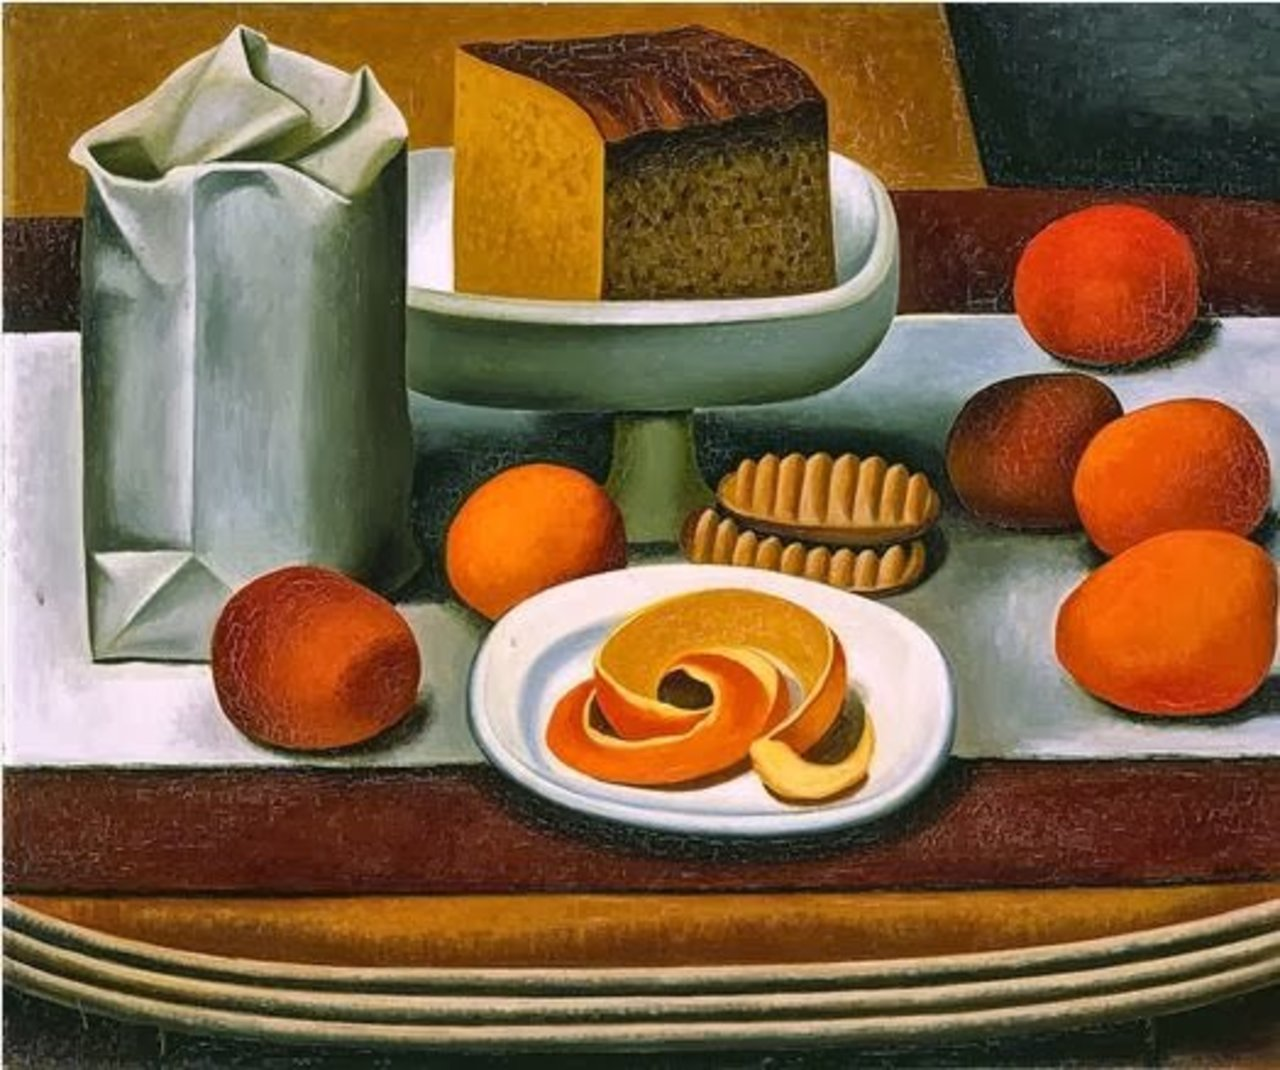 Auguste Herbin (1882–1960 French) 'Still Life' 1920 #art I love #cubism https://t.co/byIKuAfhL6